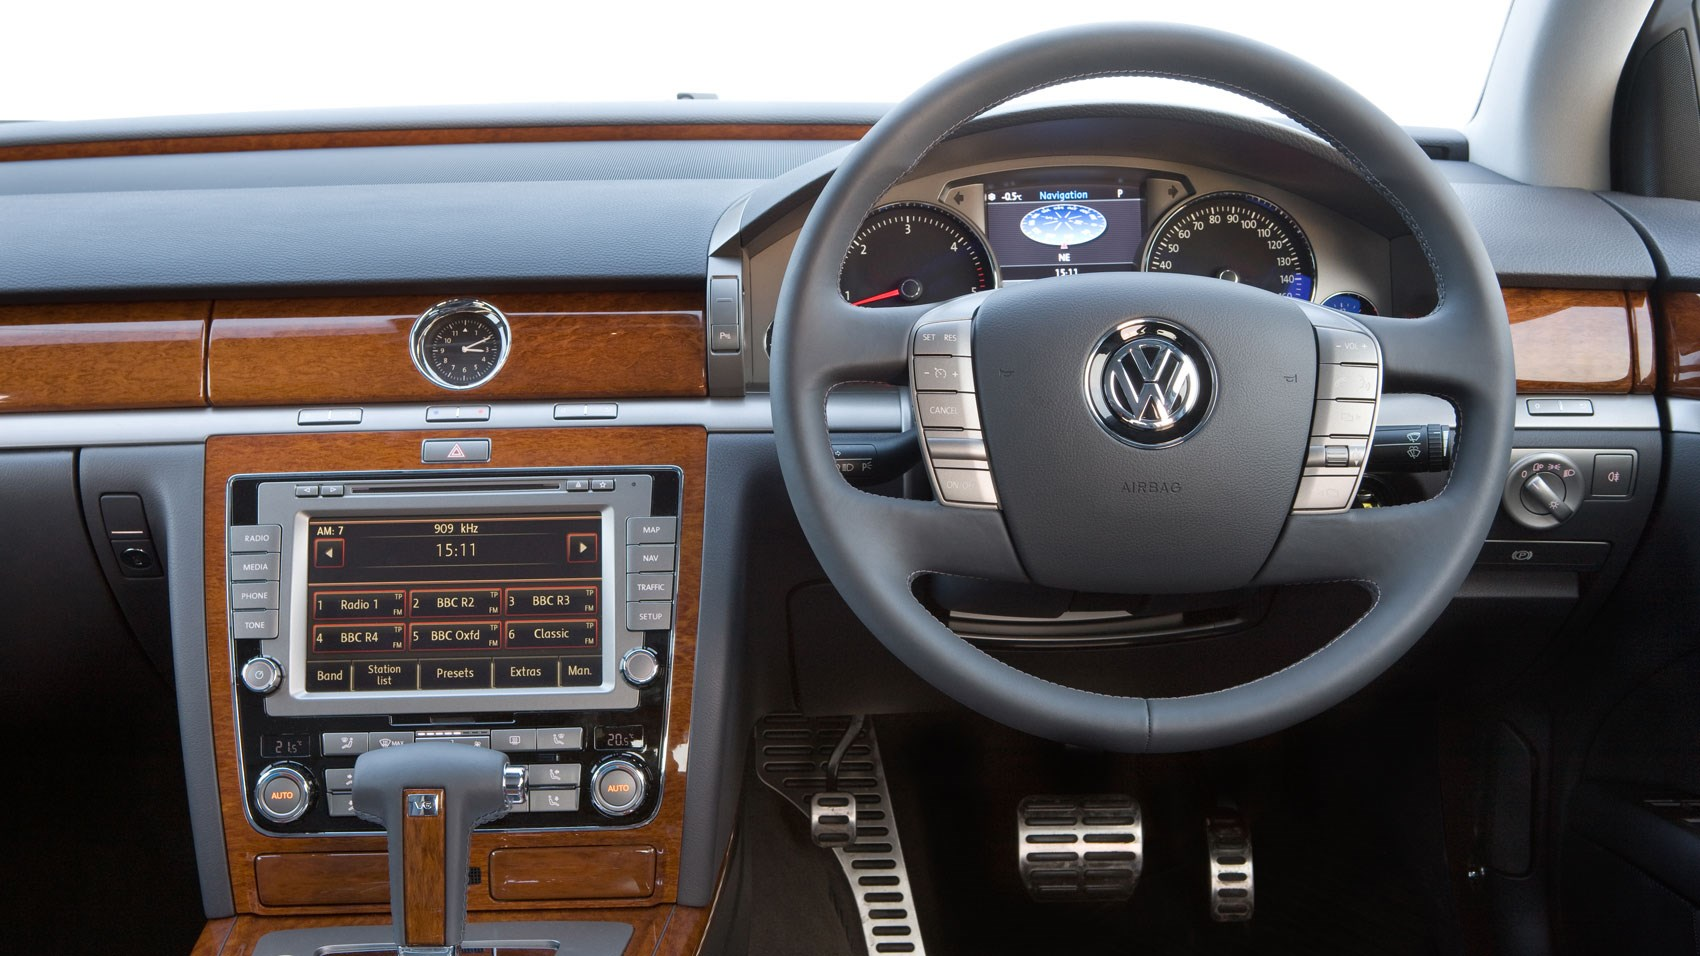 vw phaeton s ace card epic rear legroom veneer and lots of it is the order of the day up front